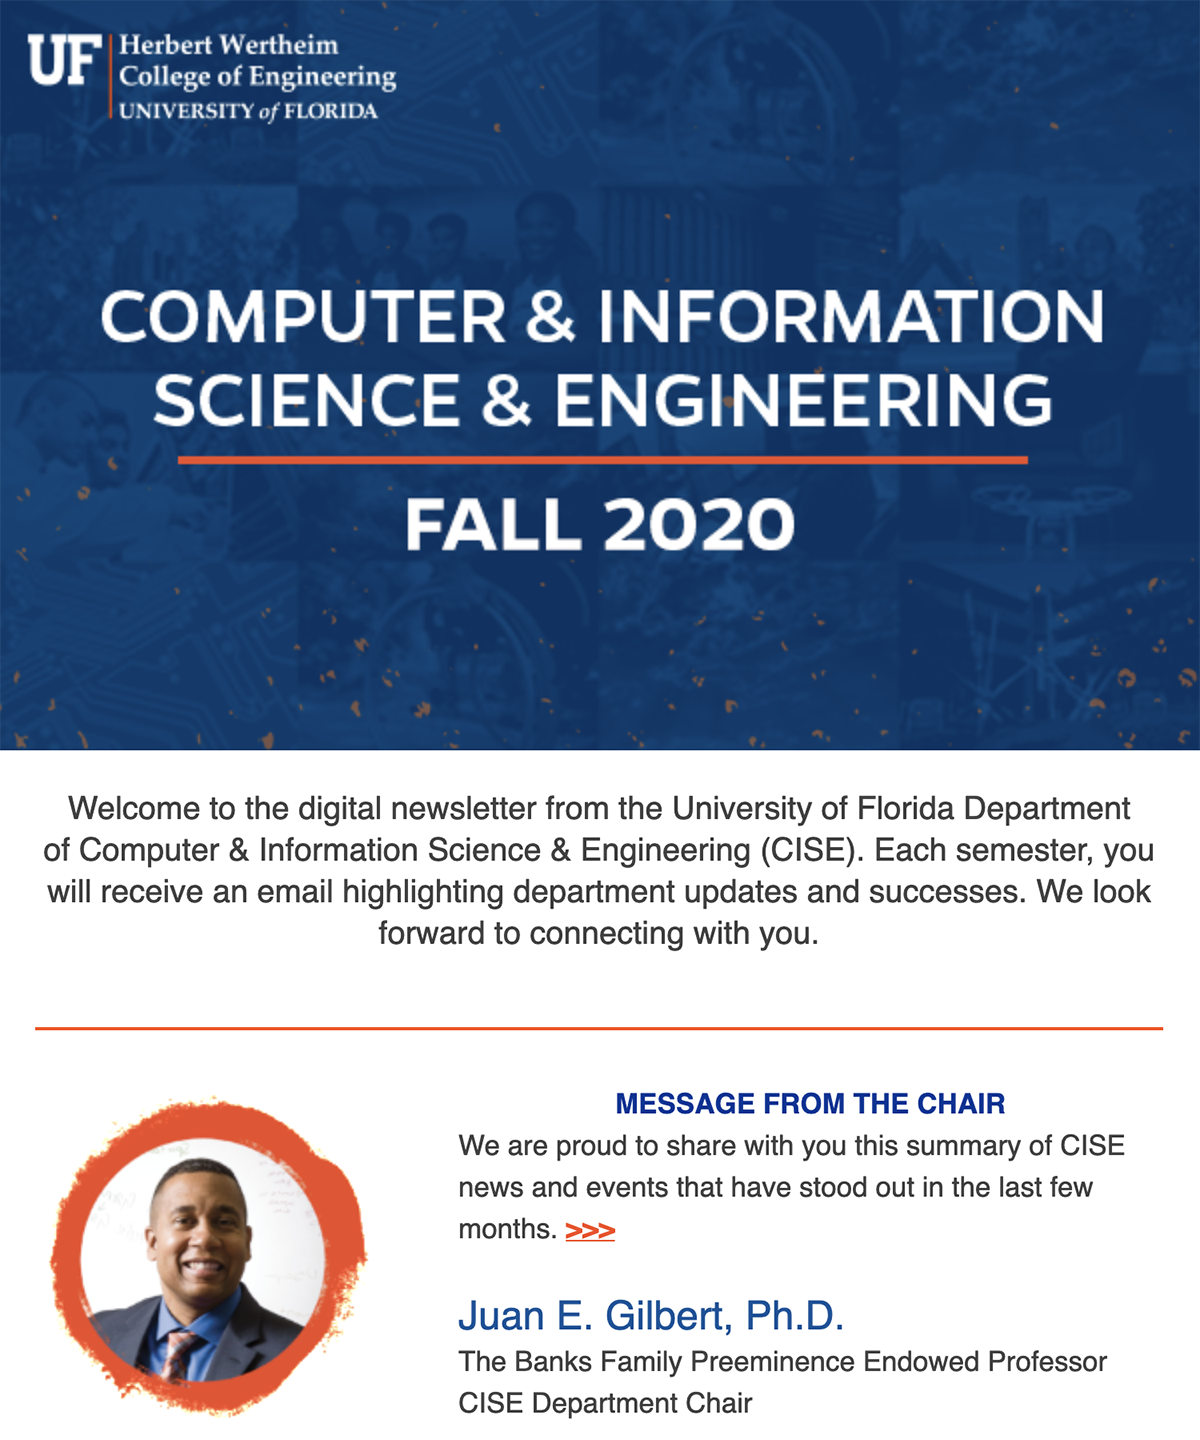 UF CISE Fall 2020 Digital Newsletter